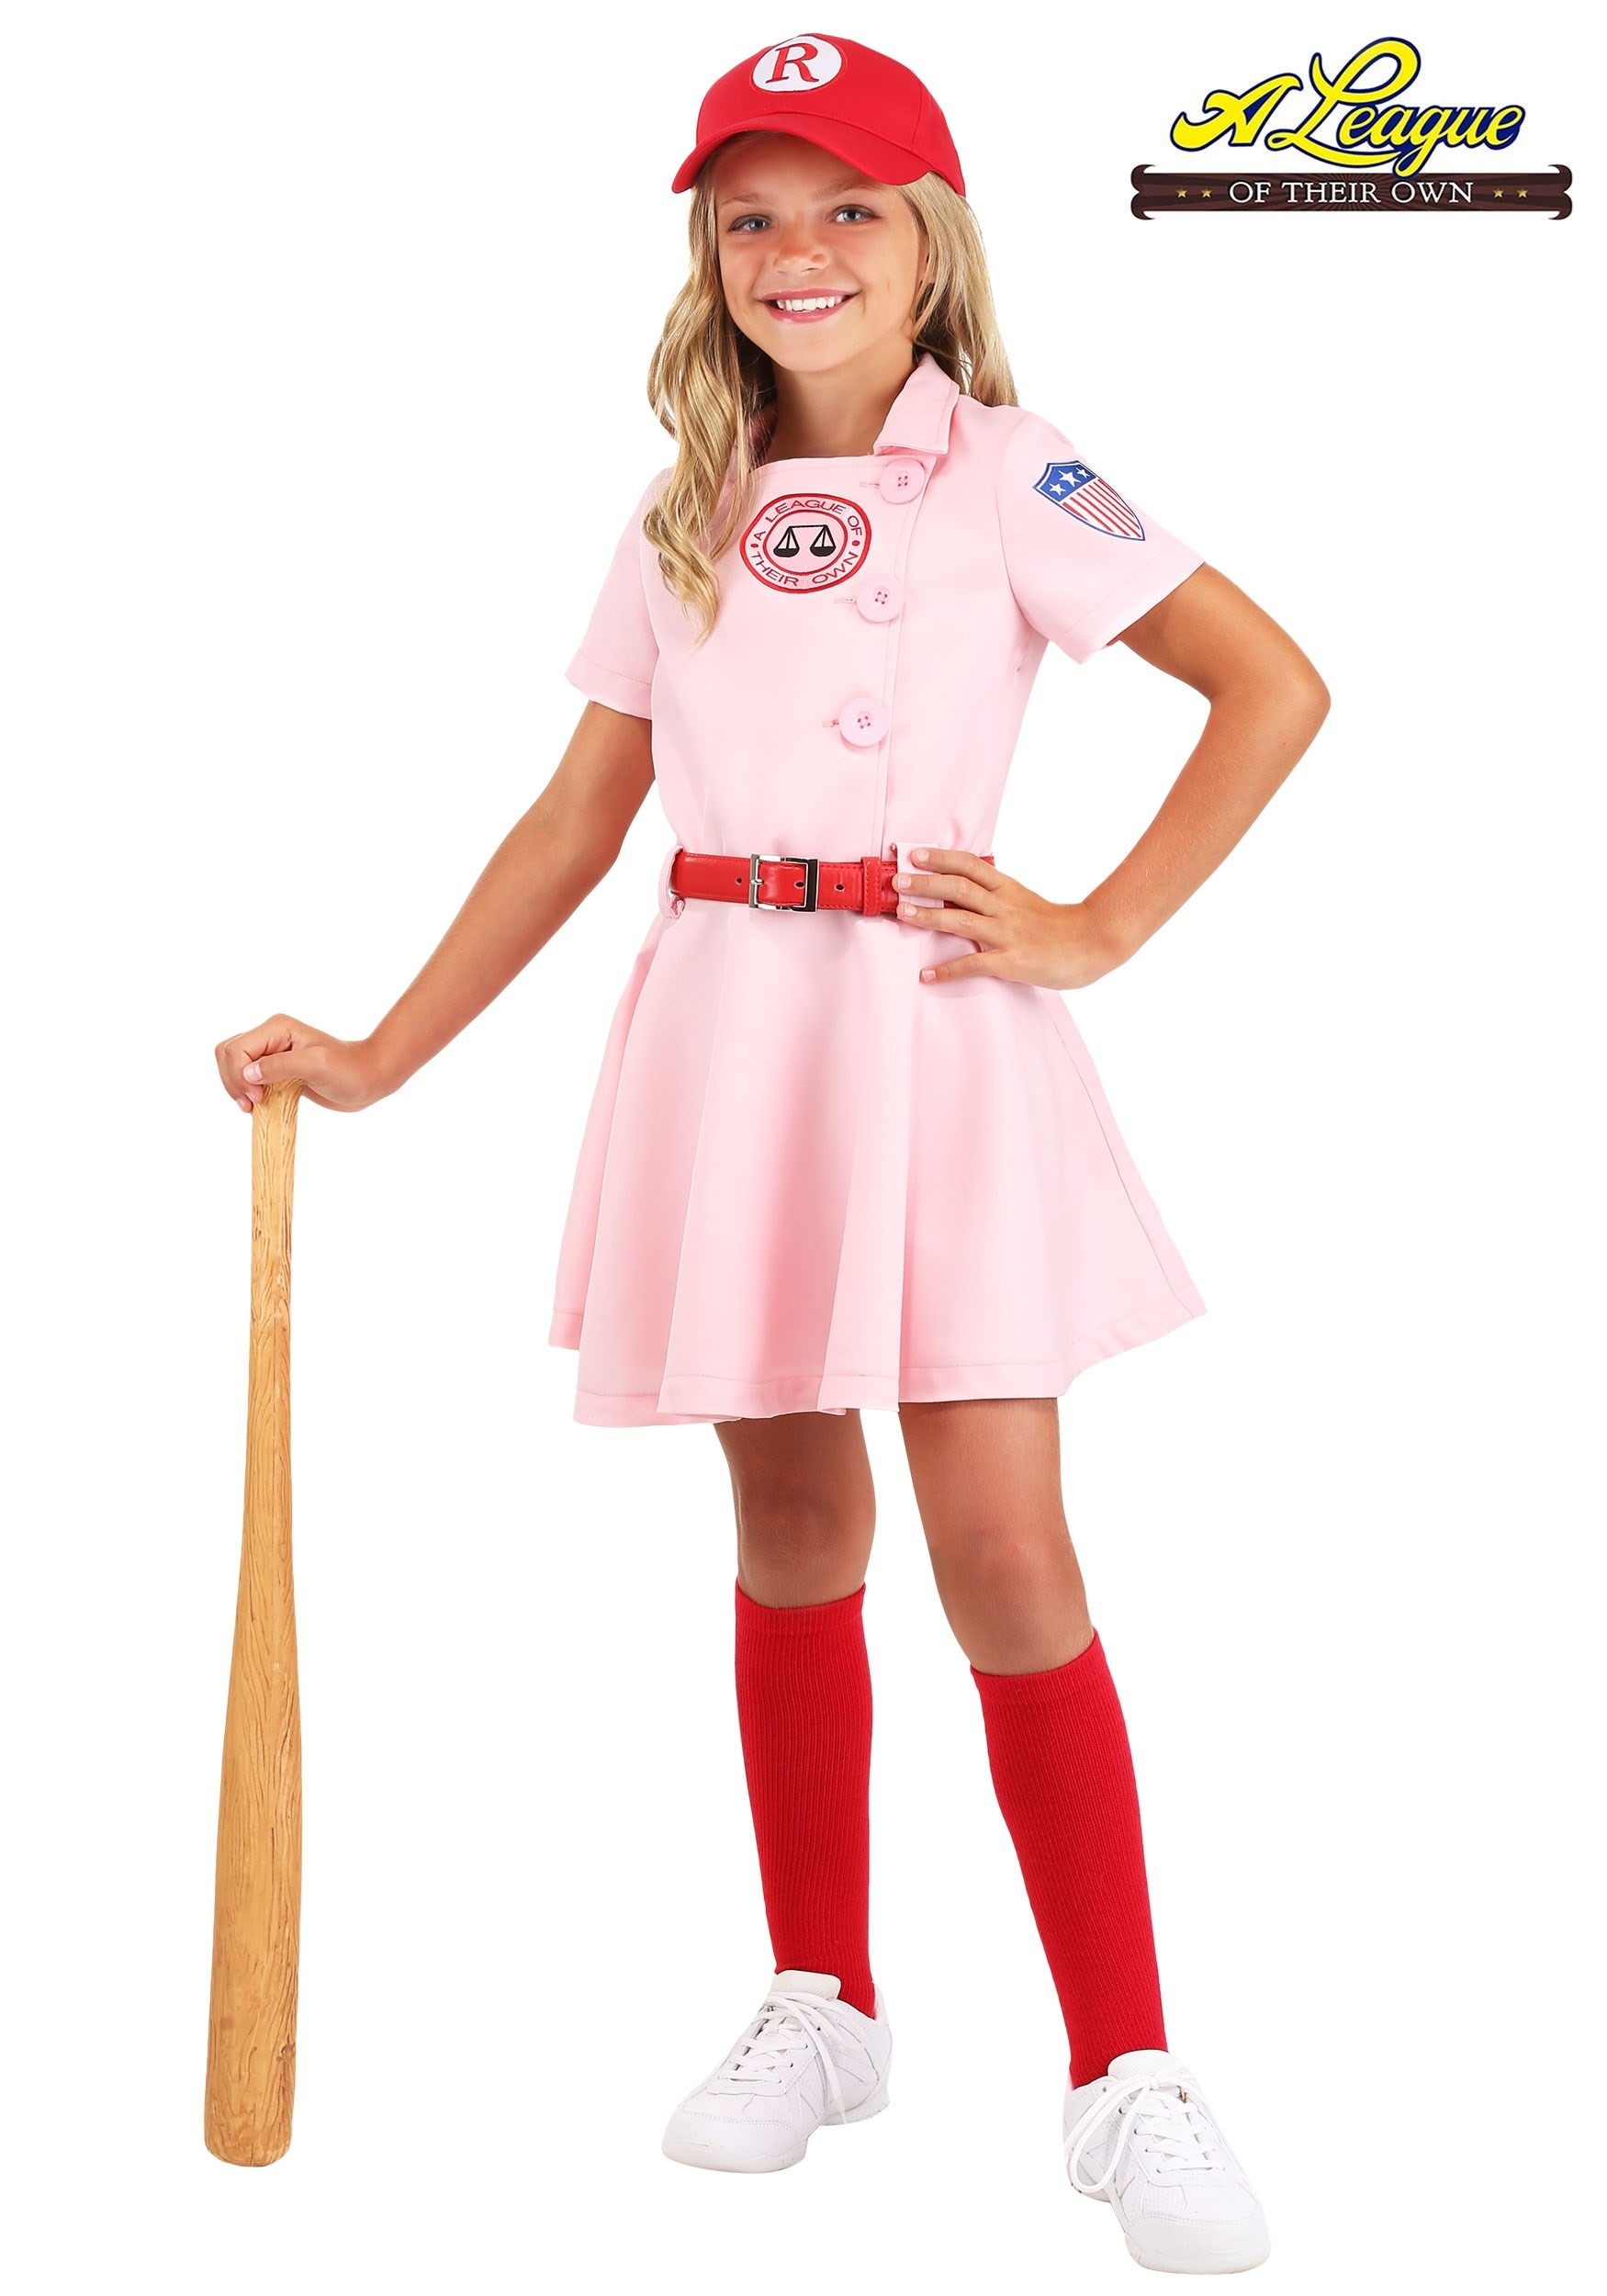 League of Their Own Luxury Child Dottie Costume for Girls